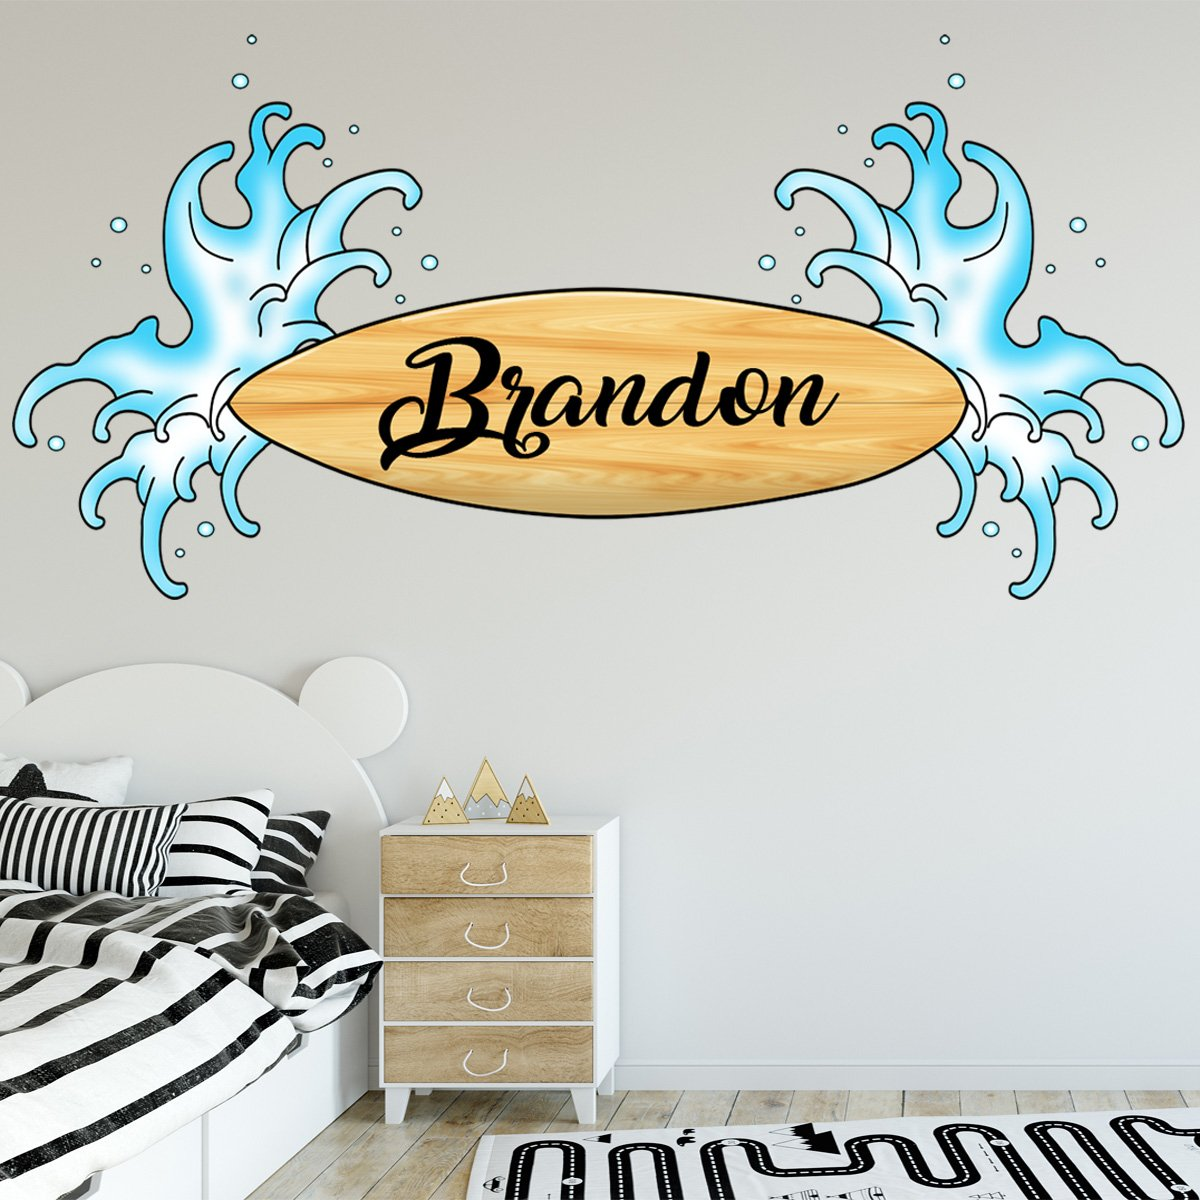 VWAQ Surfer Decal with Name Custom Surfboard Wall Stickers Personalized for Kids - SU01-P - VWAQ Vinyl Wall Art Quotes and Prints